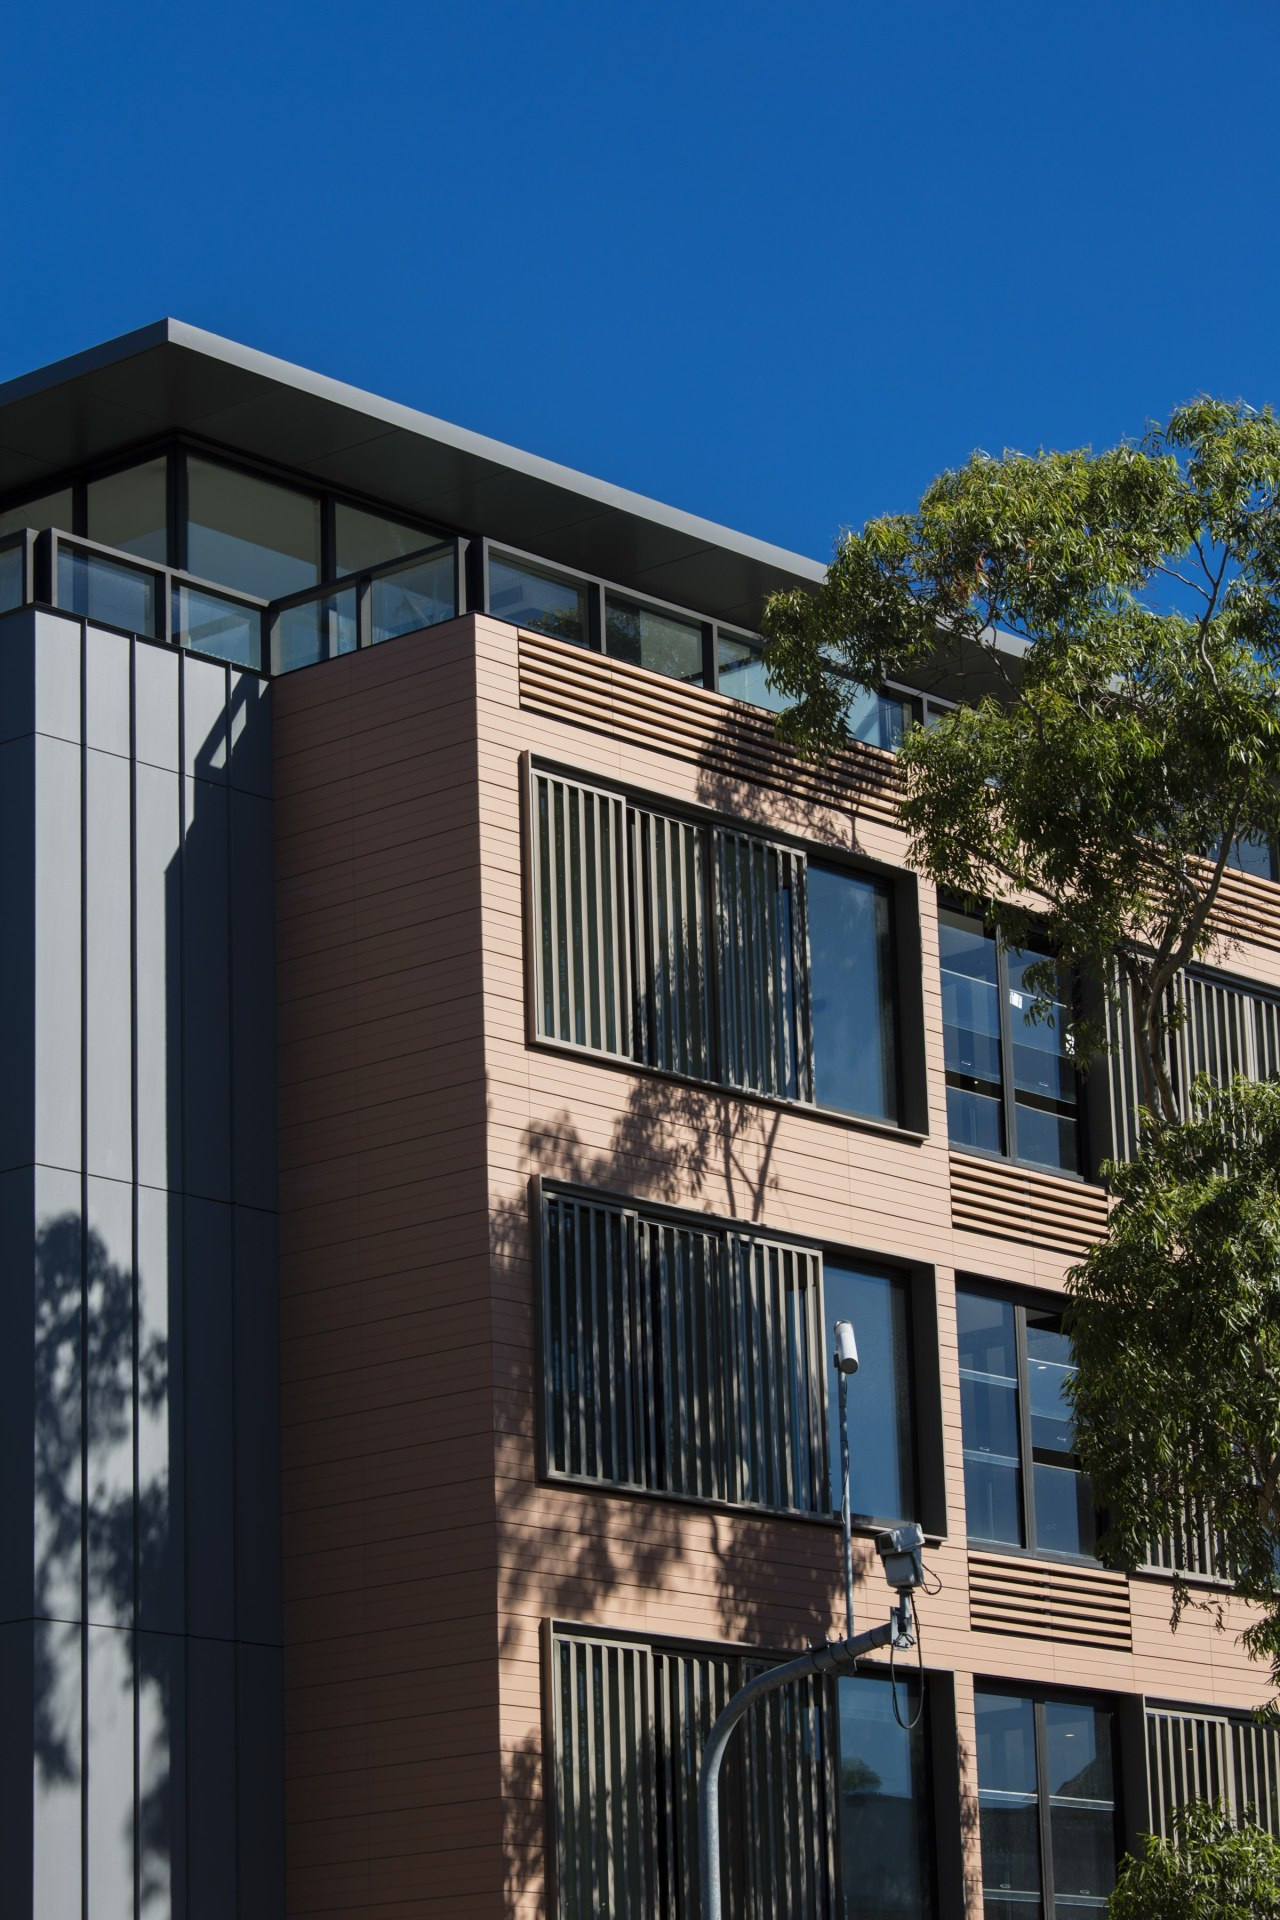 The ceramic building facade system – Available from apartment, architecture, building, commercial building, condominium, corporate headquarters, elevation, facade, home, house, mixed use, neighbourhood, property, real estate, residential area, black, blue